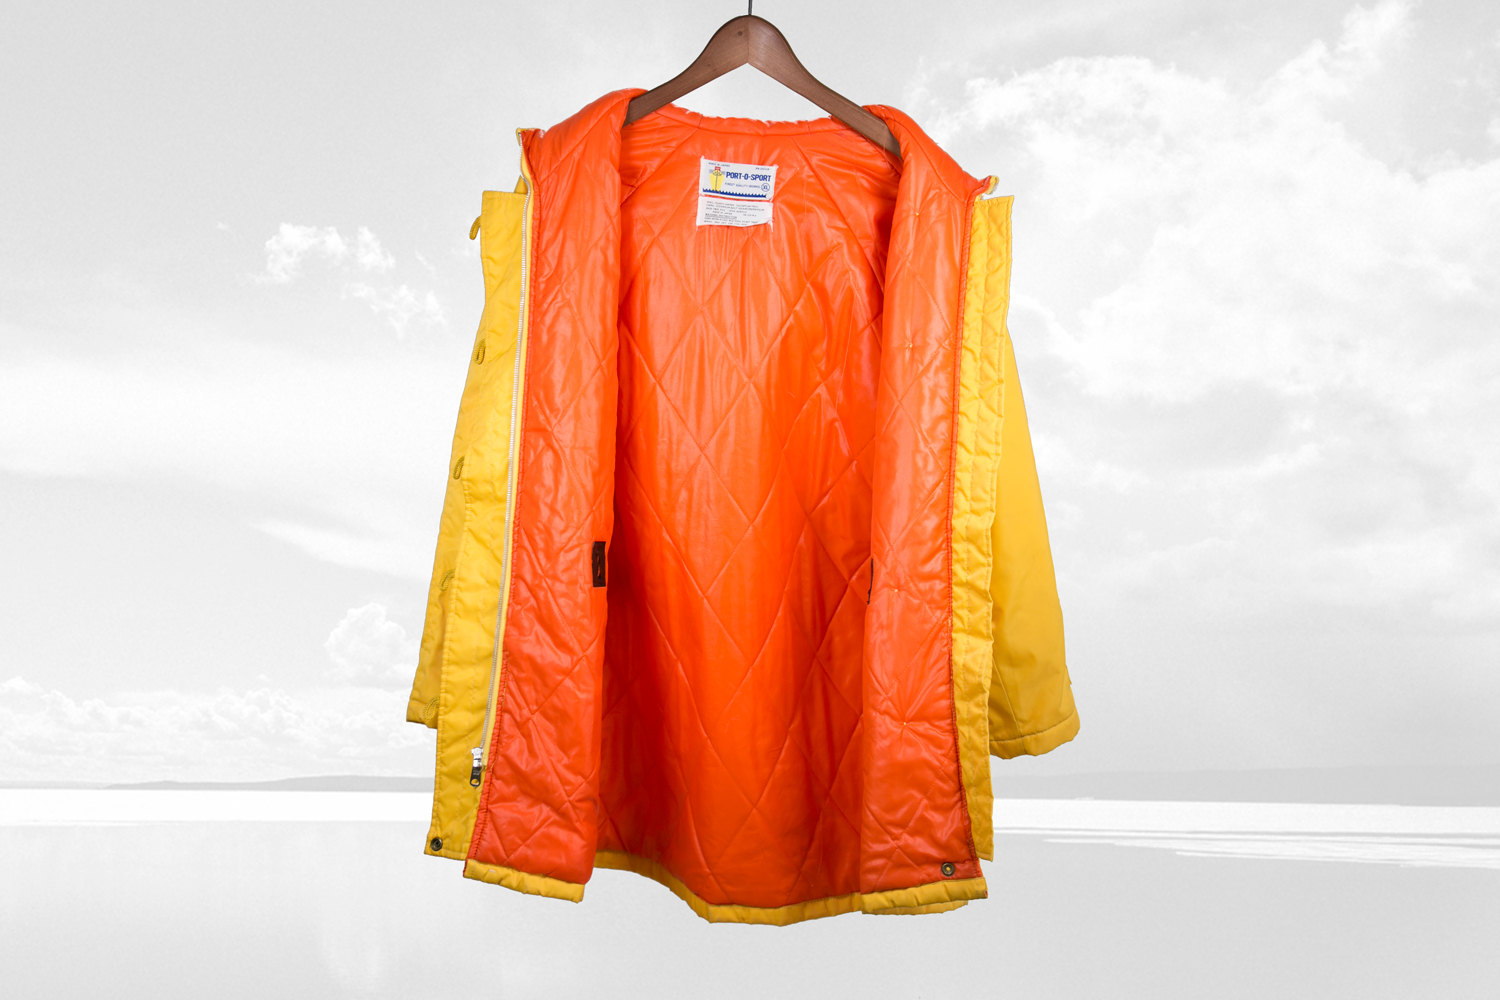 """Vintage 1970's Fur lined Yellow & Orange Winter Parka, Quilt-lined, """"Port-O-Sport"""" - Size XL - Hipster, Indie, Retro"""